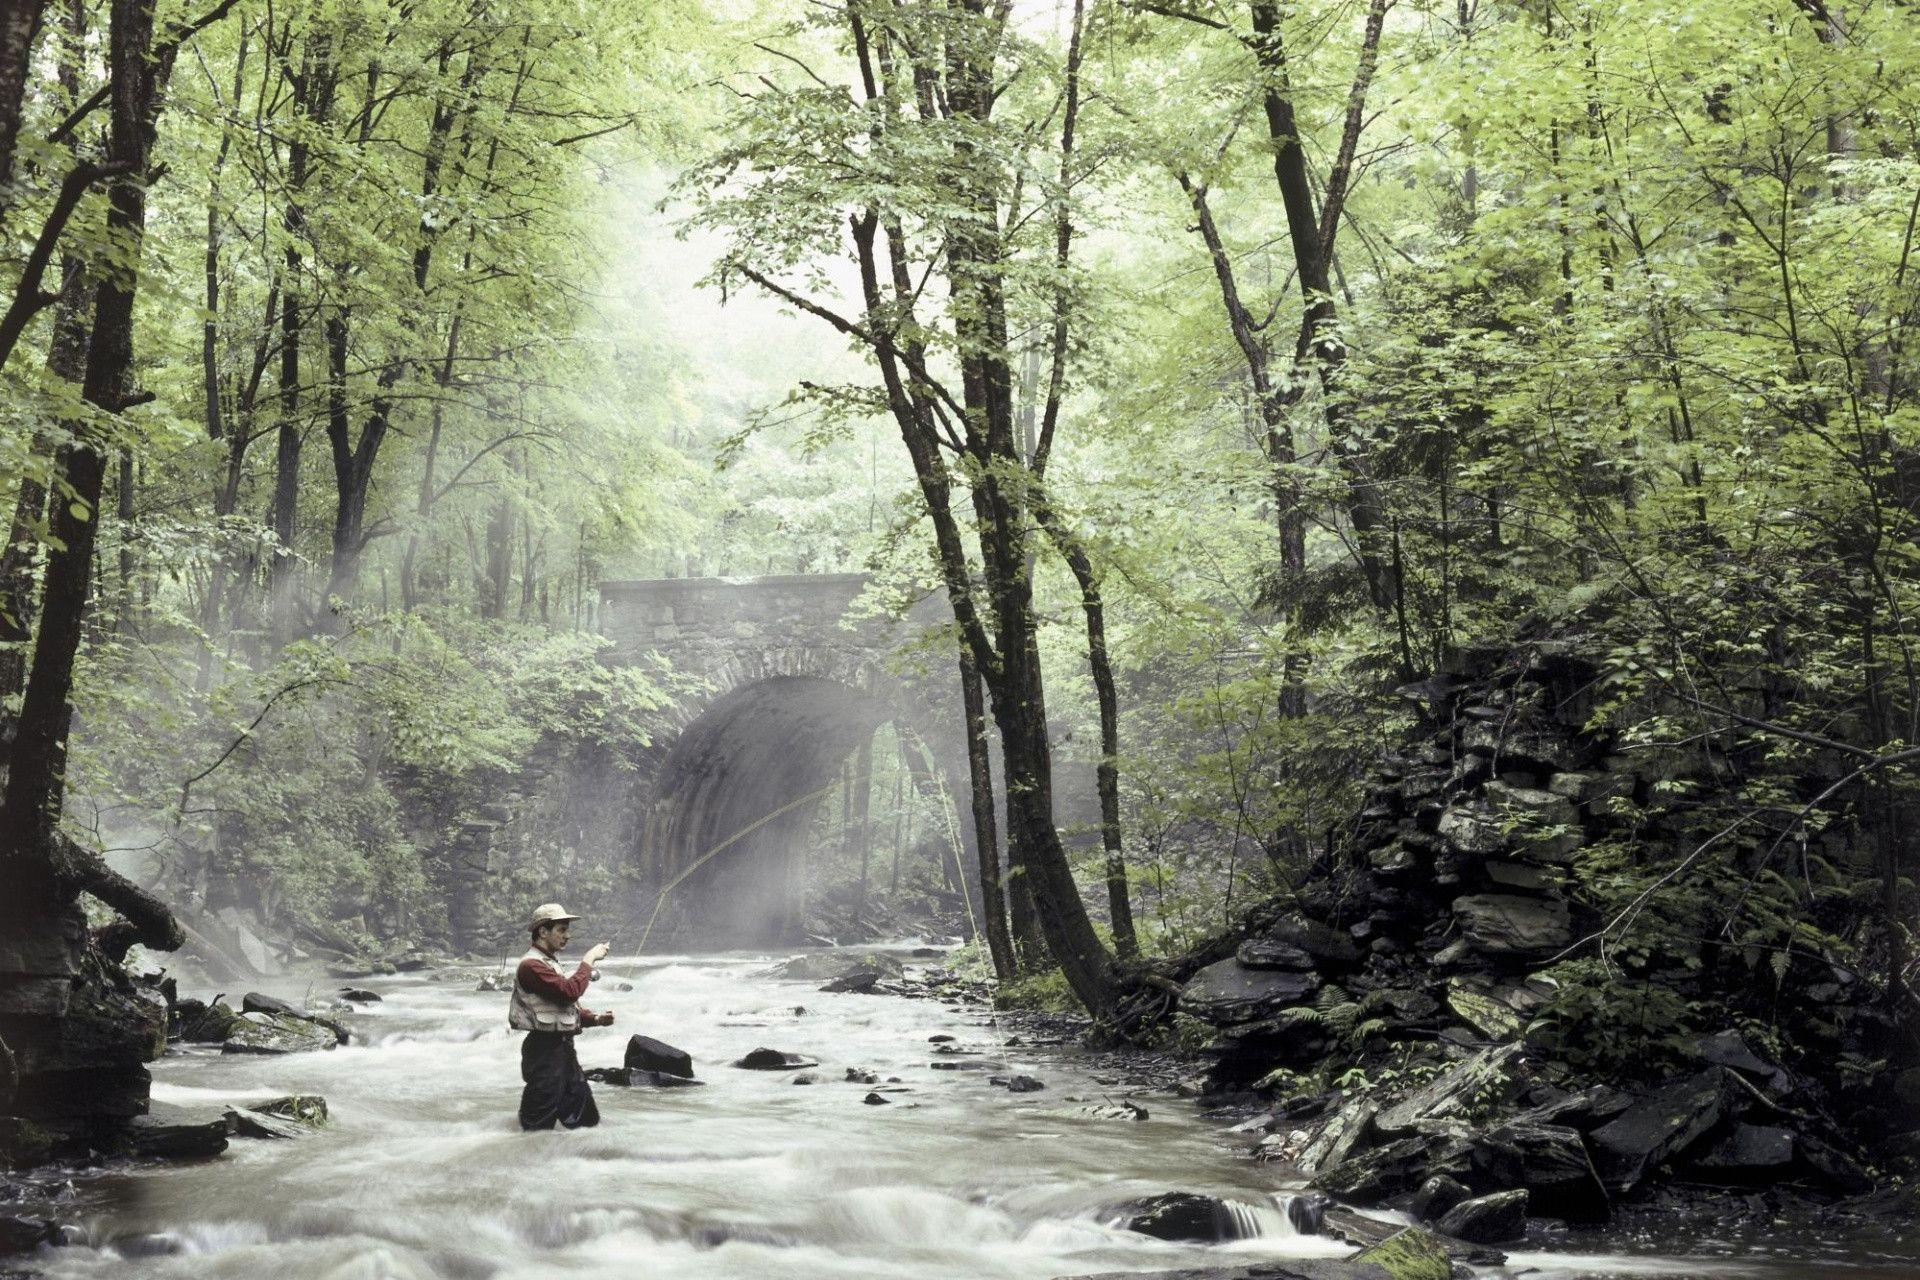 trout fly fishing wallpaper - photo #39